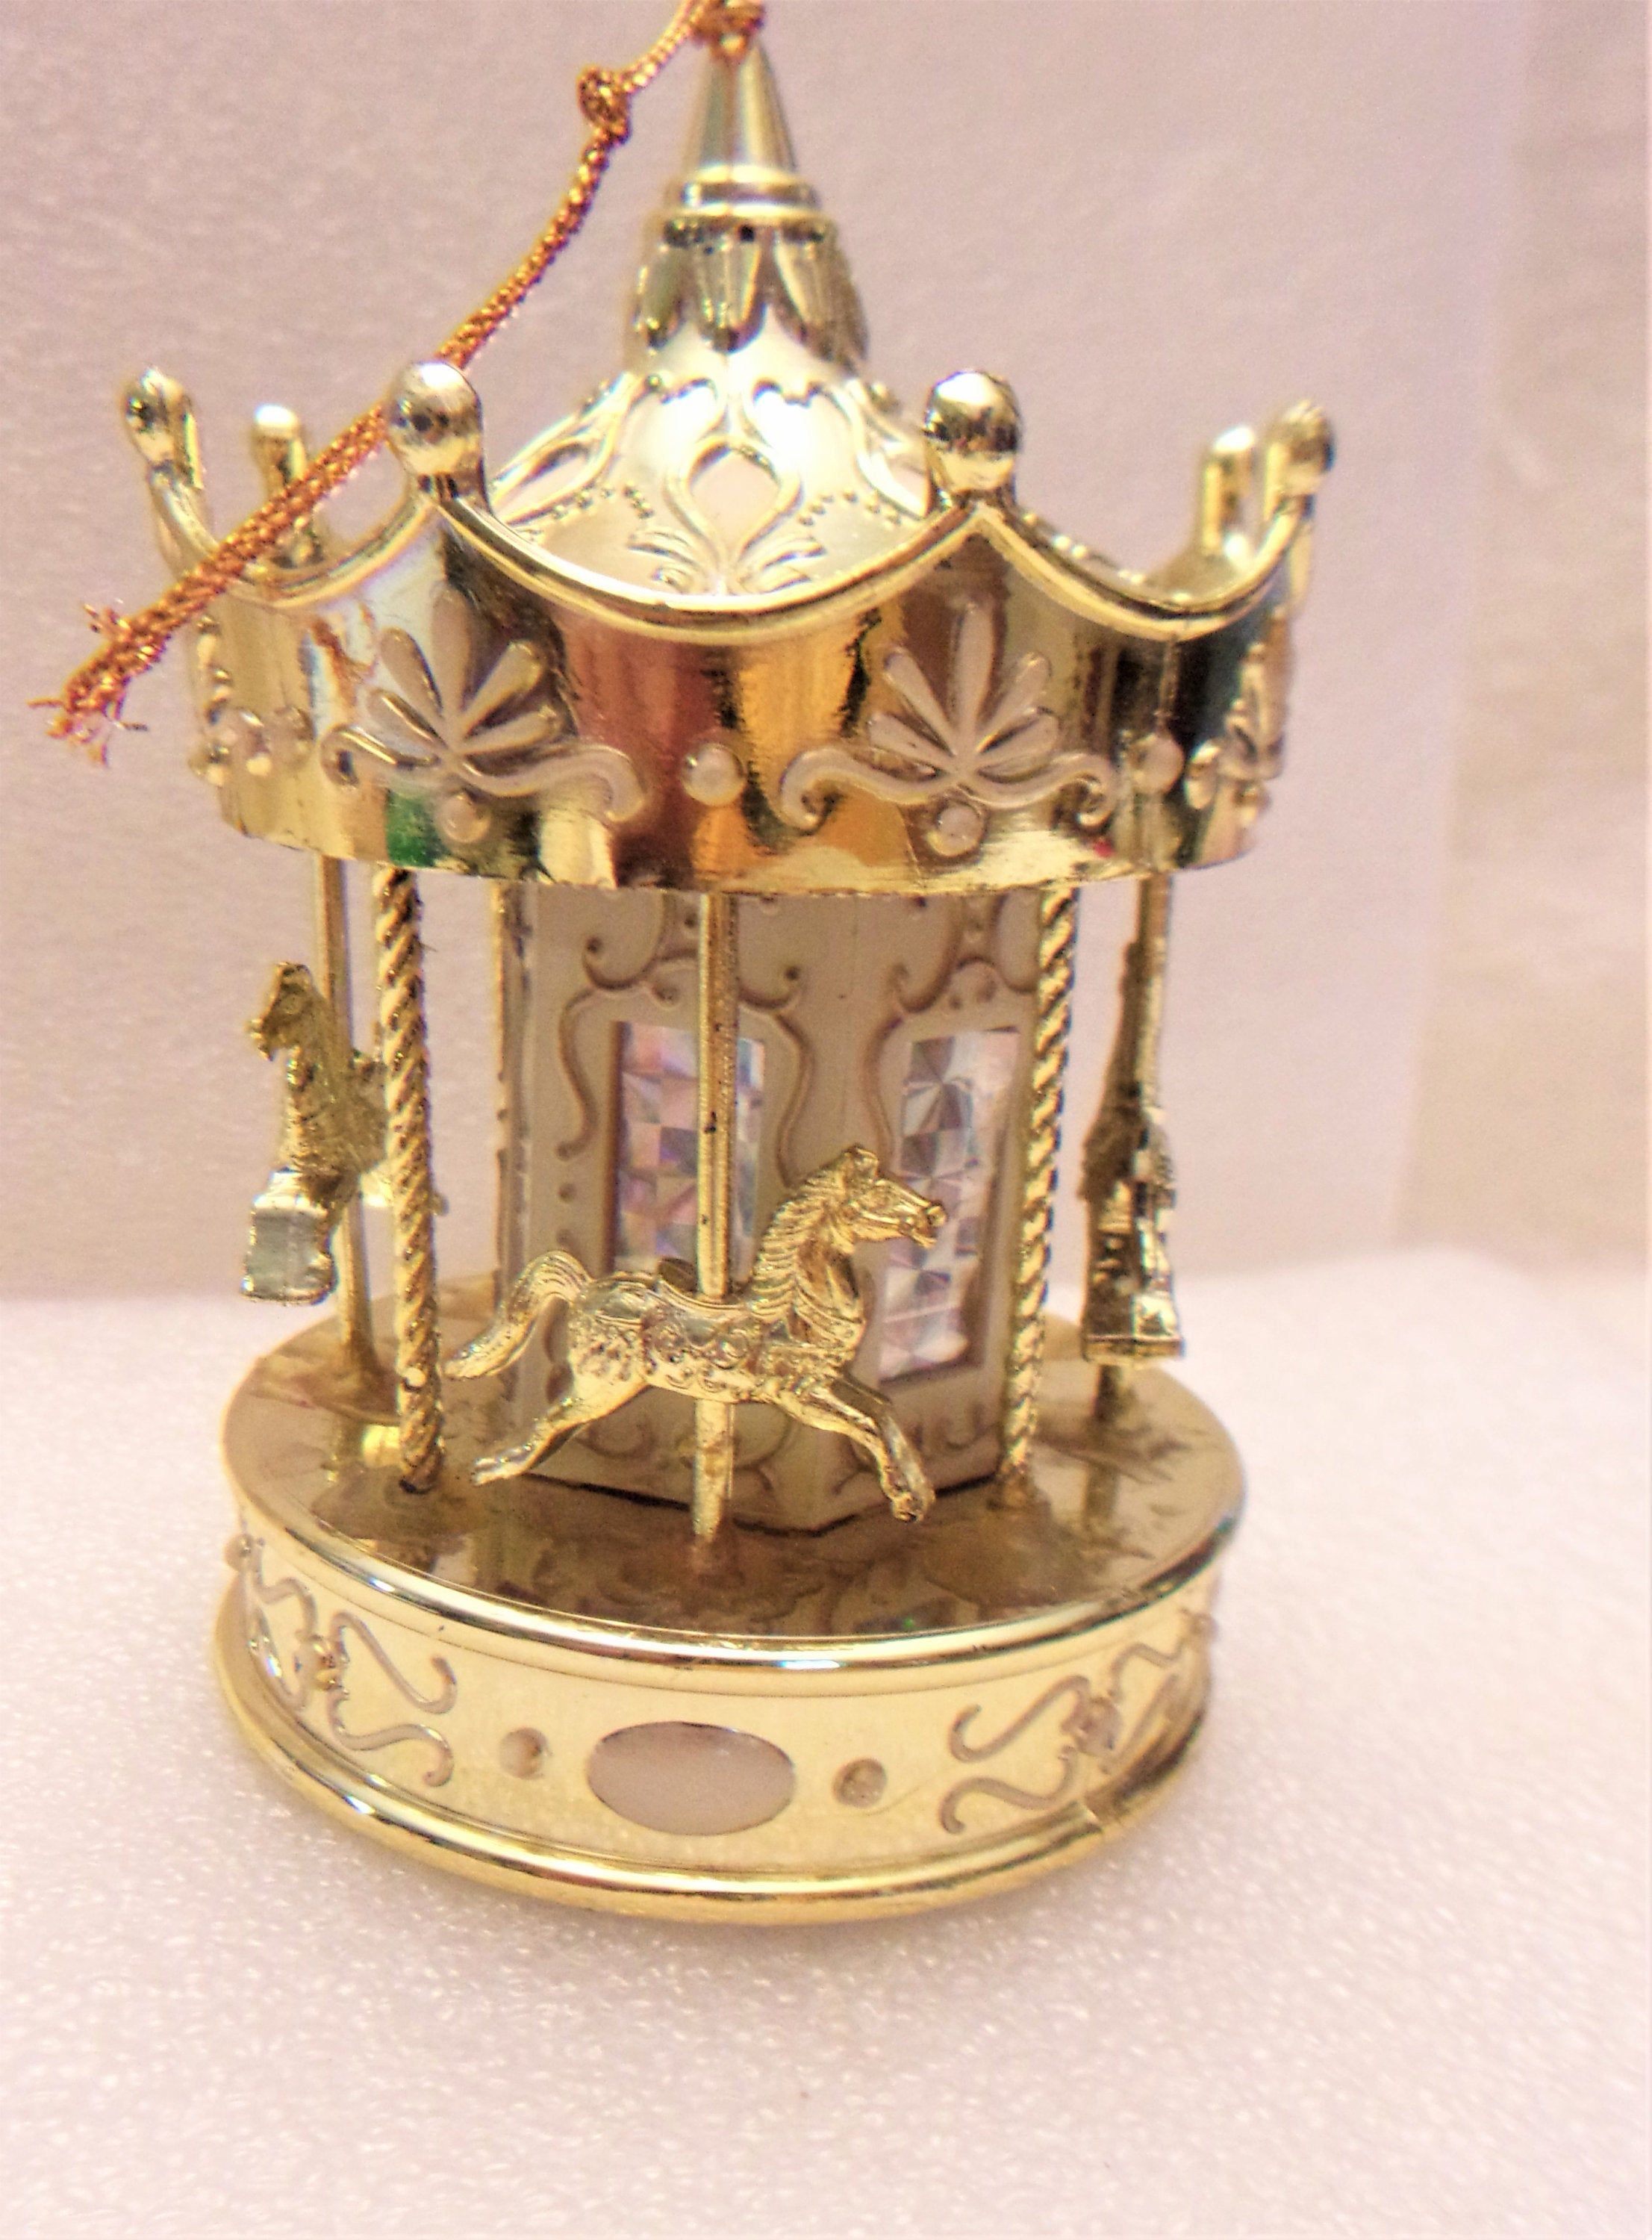 Carousel Christmas Ornament Holiday Merry Go Round Home ...